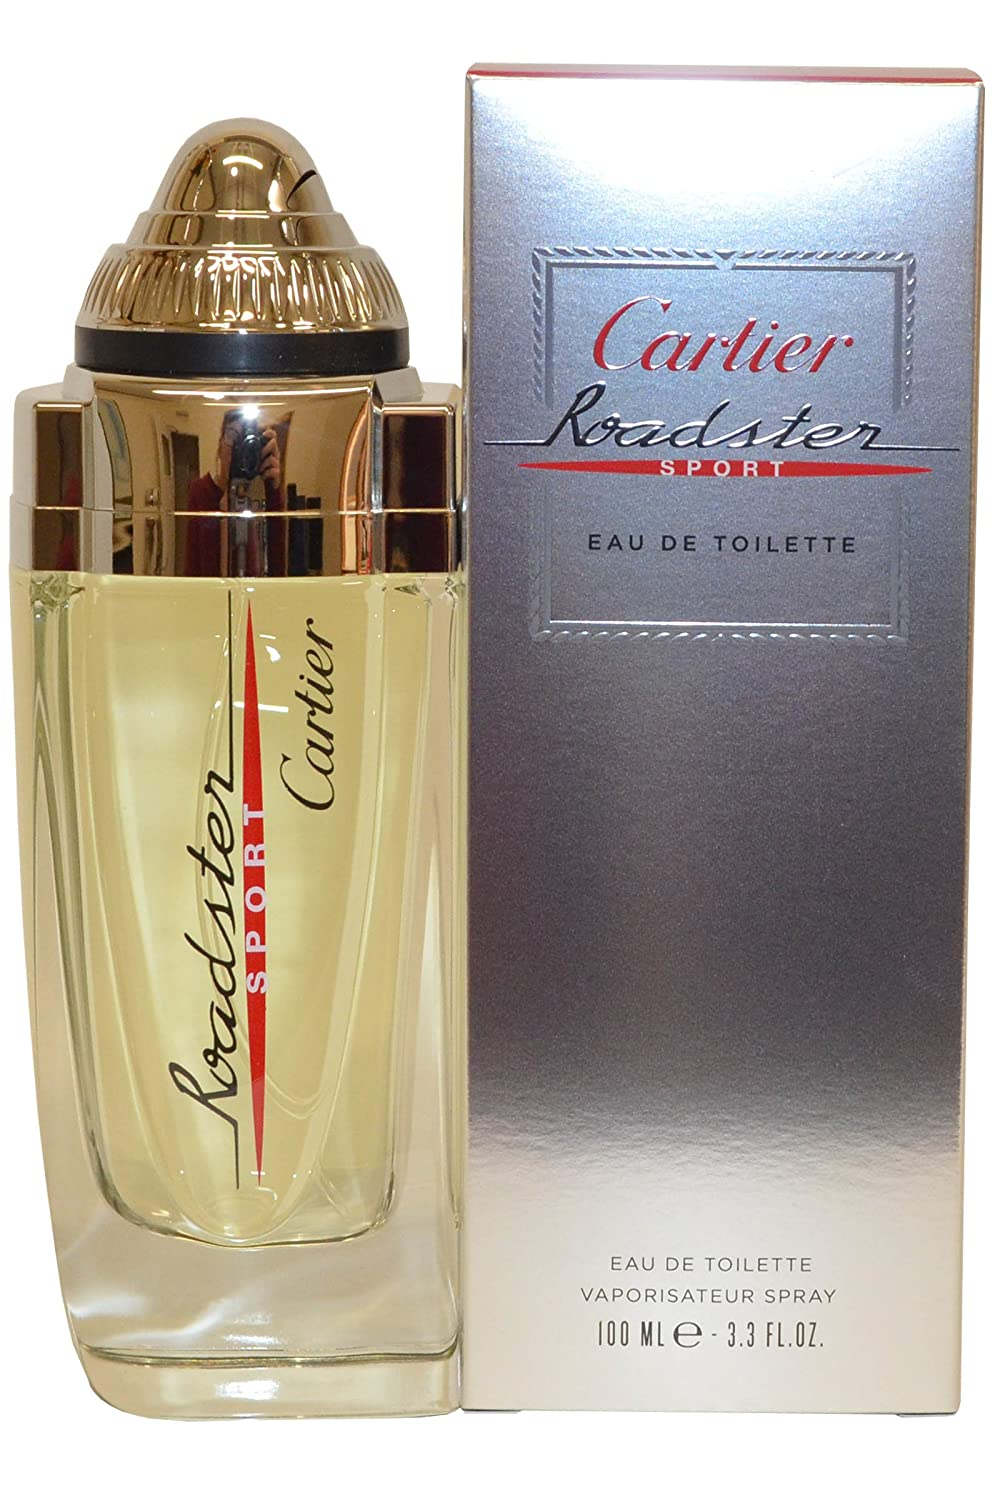 e371546b391 Amazon.com   Cartier Roadster Sport Eau De Toilette Spray